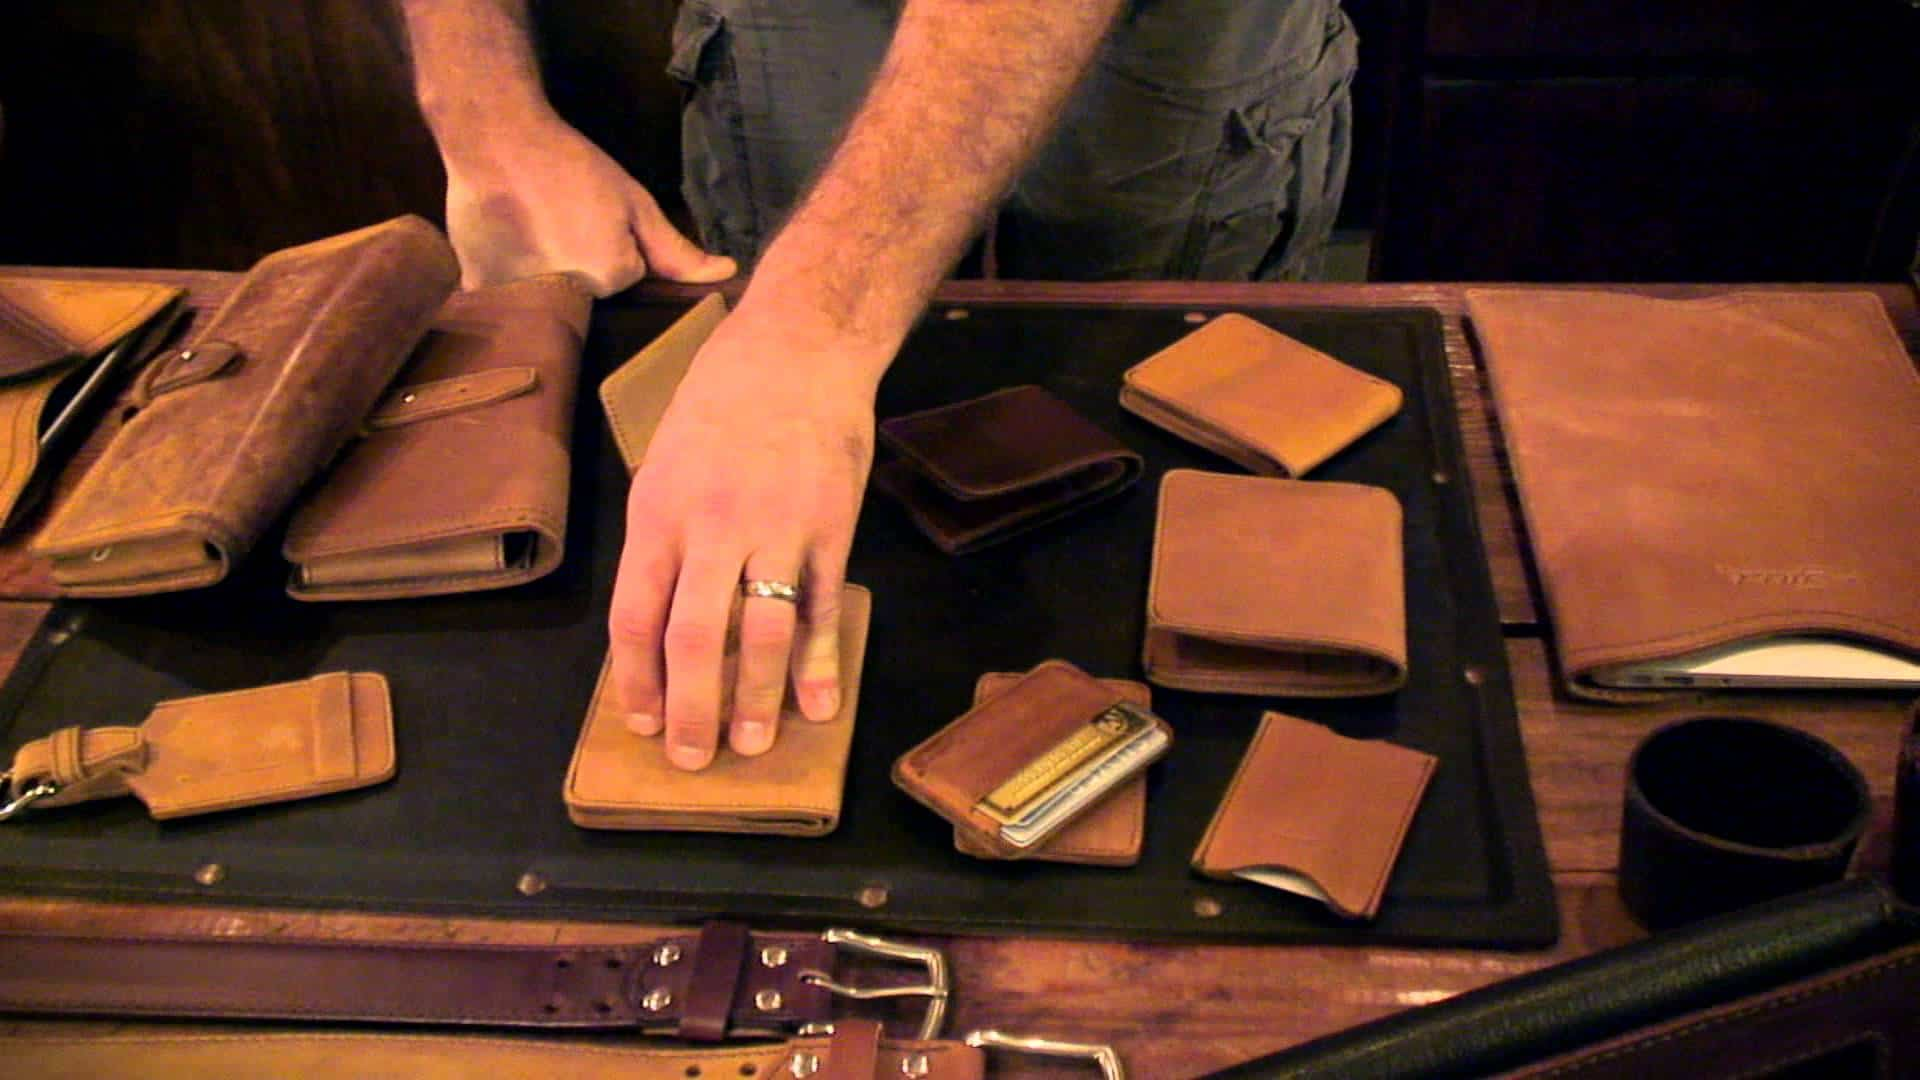 leather crafting - Handmade Leather Goods